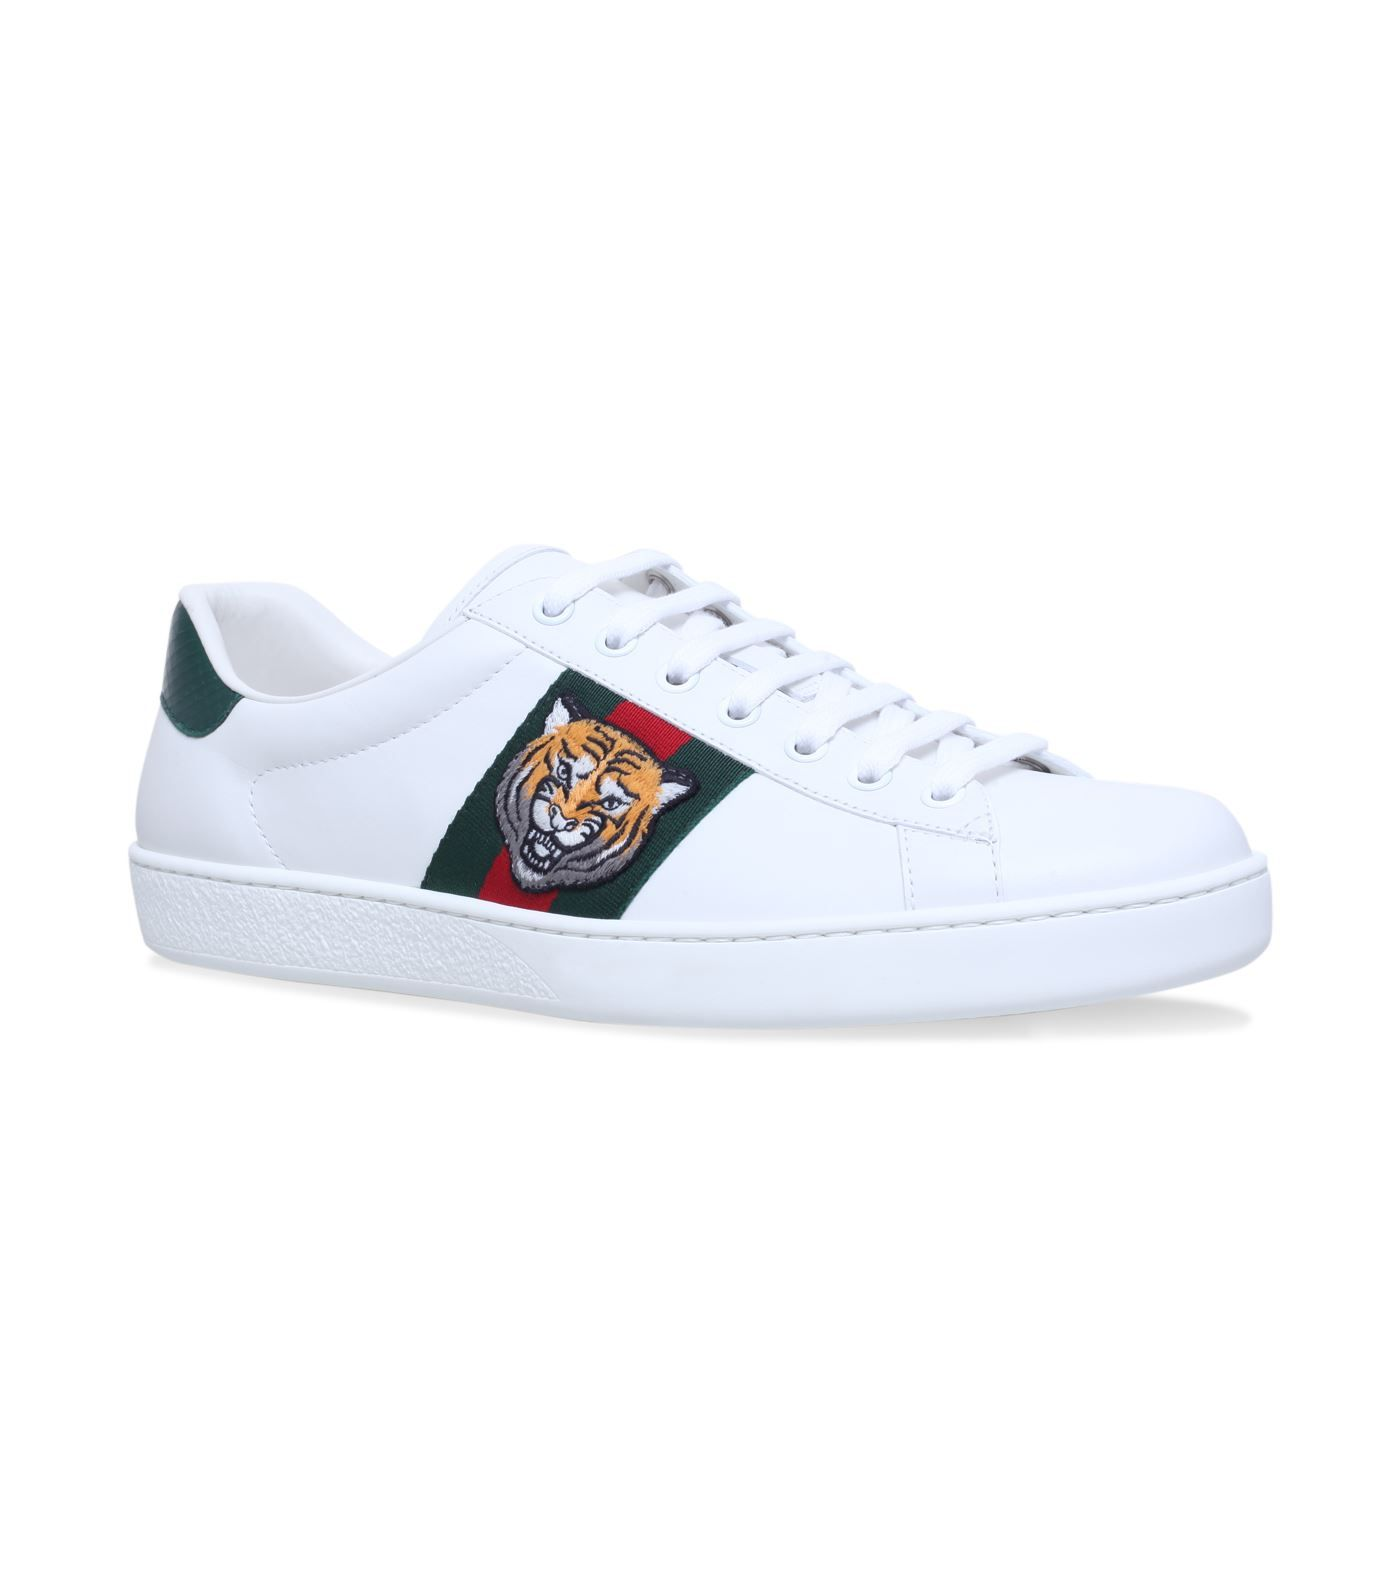 930b8bcc3 Ace sneaker in 2019 | Wishlist. | Gucci ace sneakers, Gucci sneakers ...